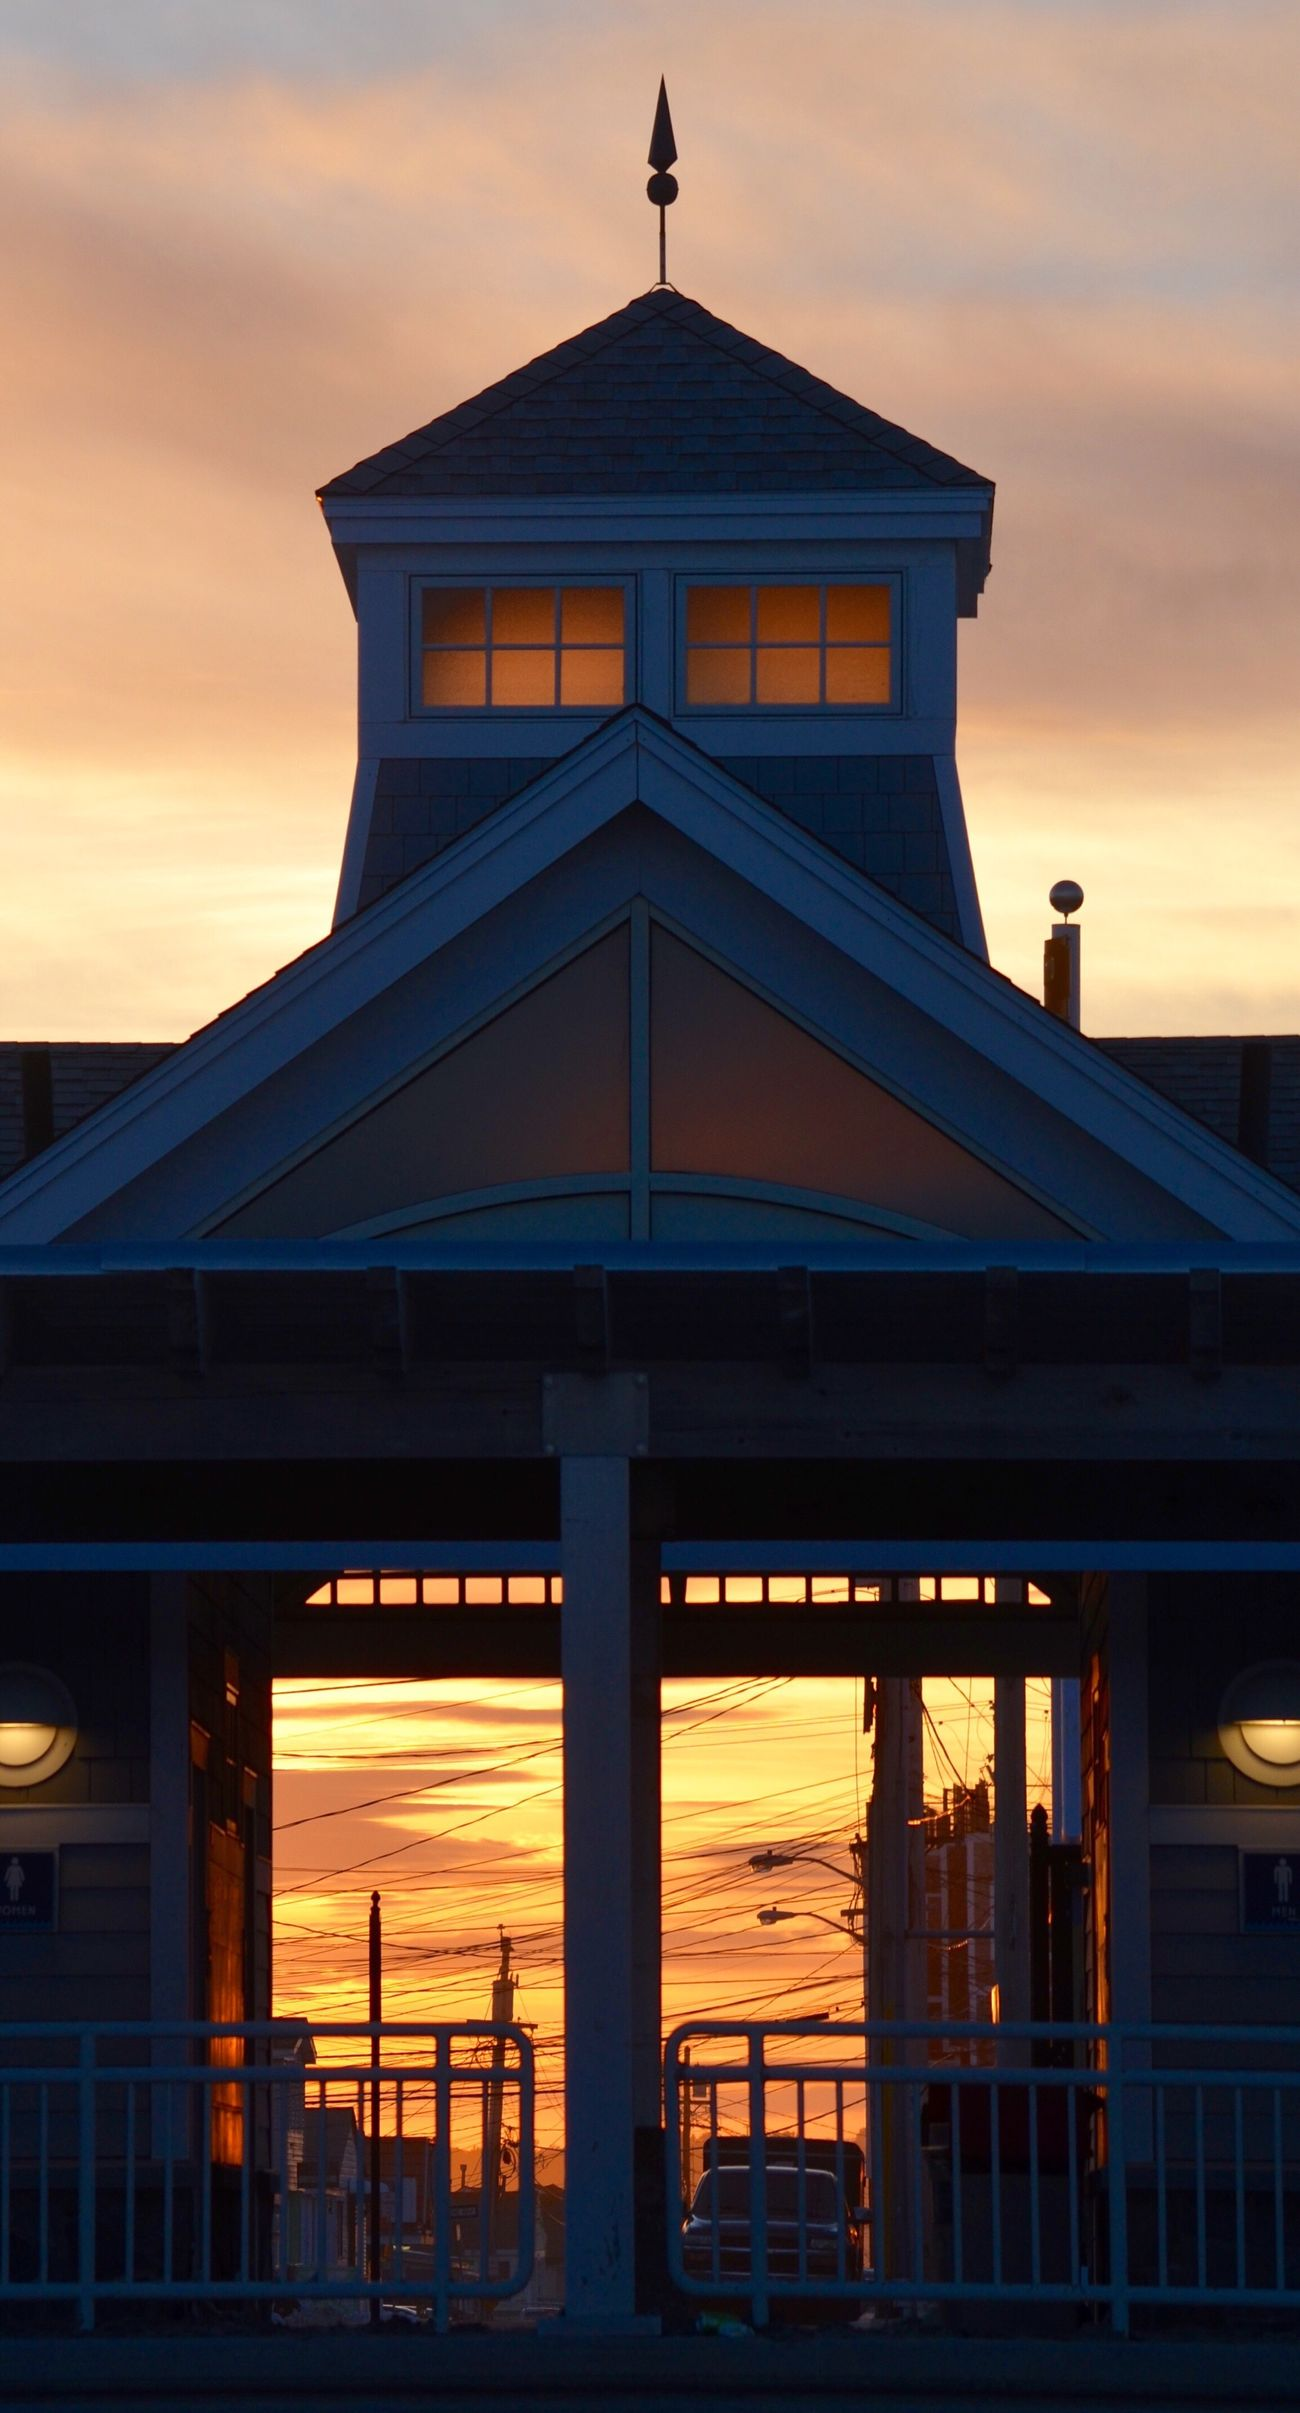 Sunset Architecture Built Structure Building Exterior Sky Silhouette No People Outdoors Day Sunset_collection Sunset_captures Sunset Landscape Roadandscenery